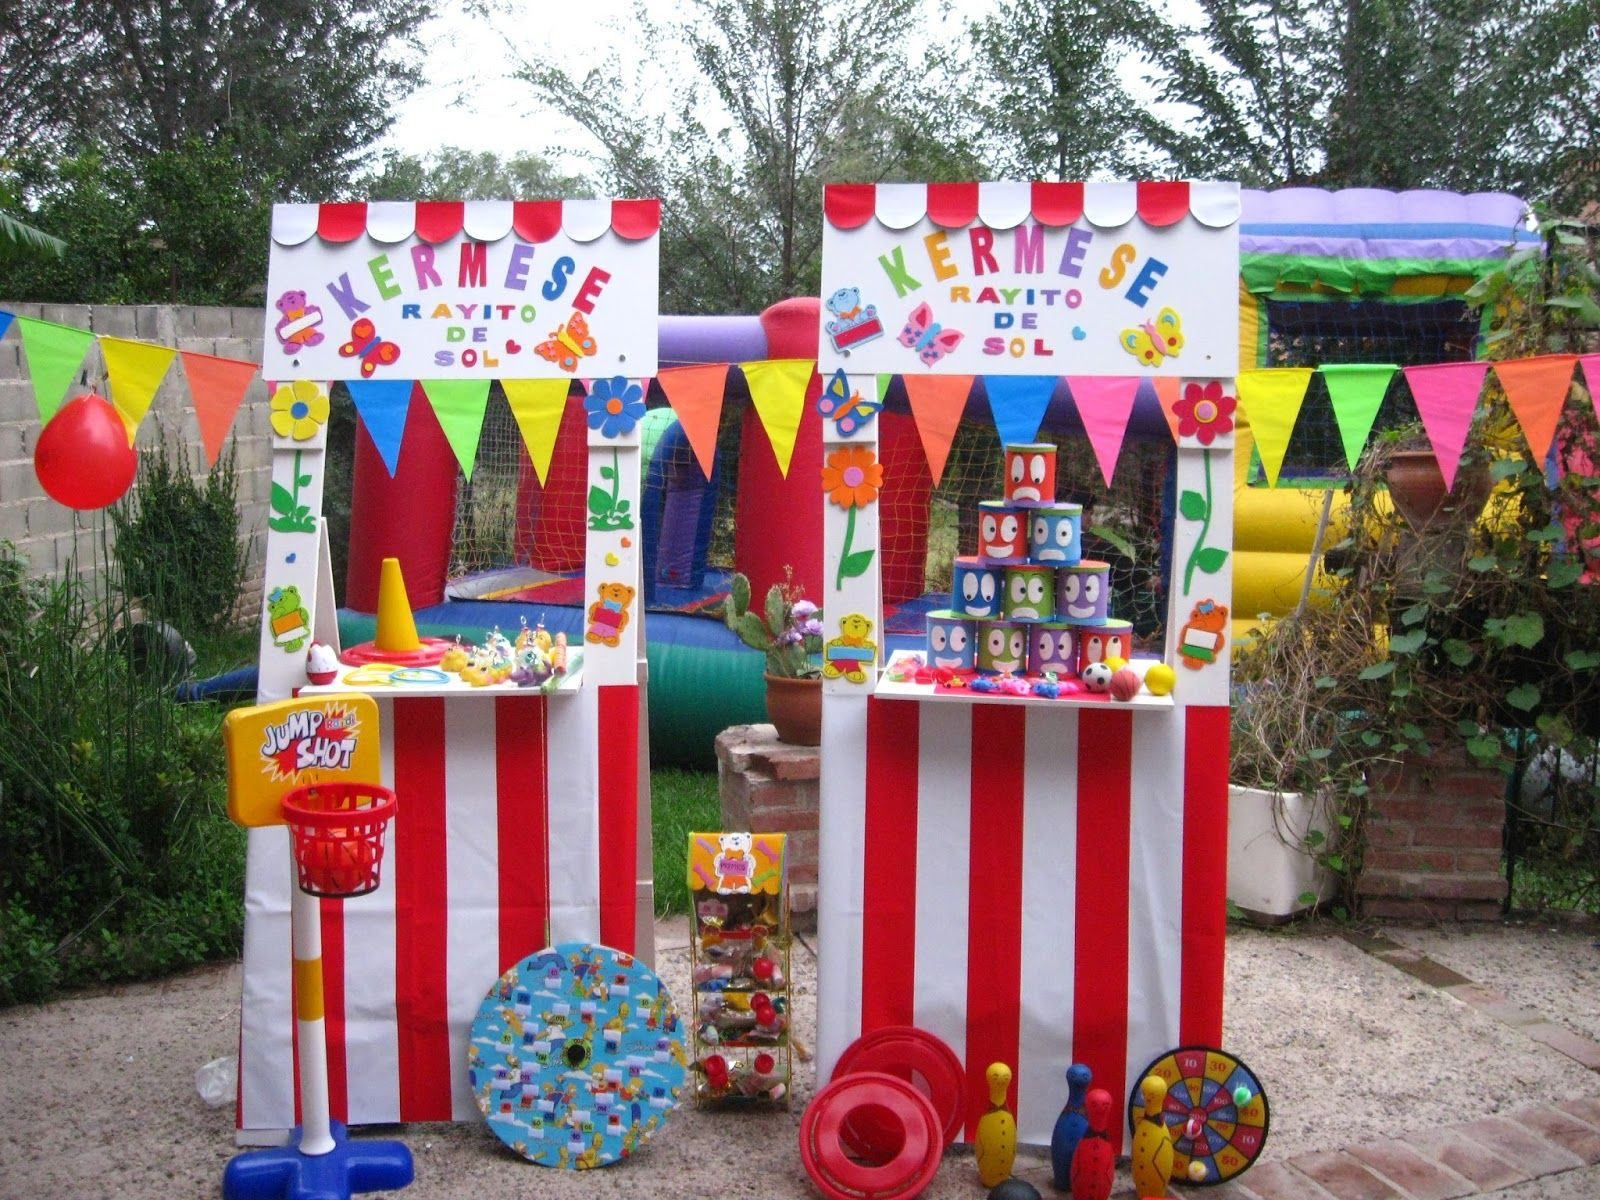 Decoracion kermes buscar con google kermese for Decoracion kermes mexicana